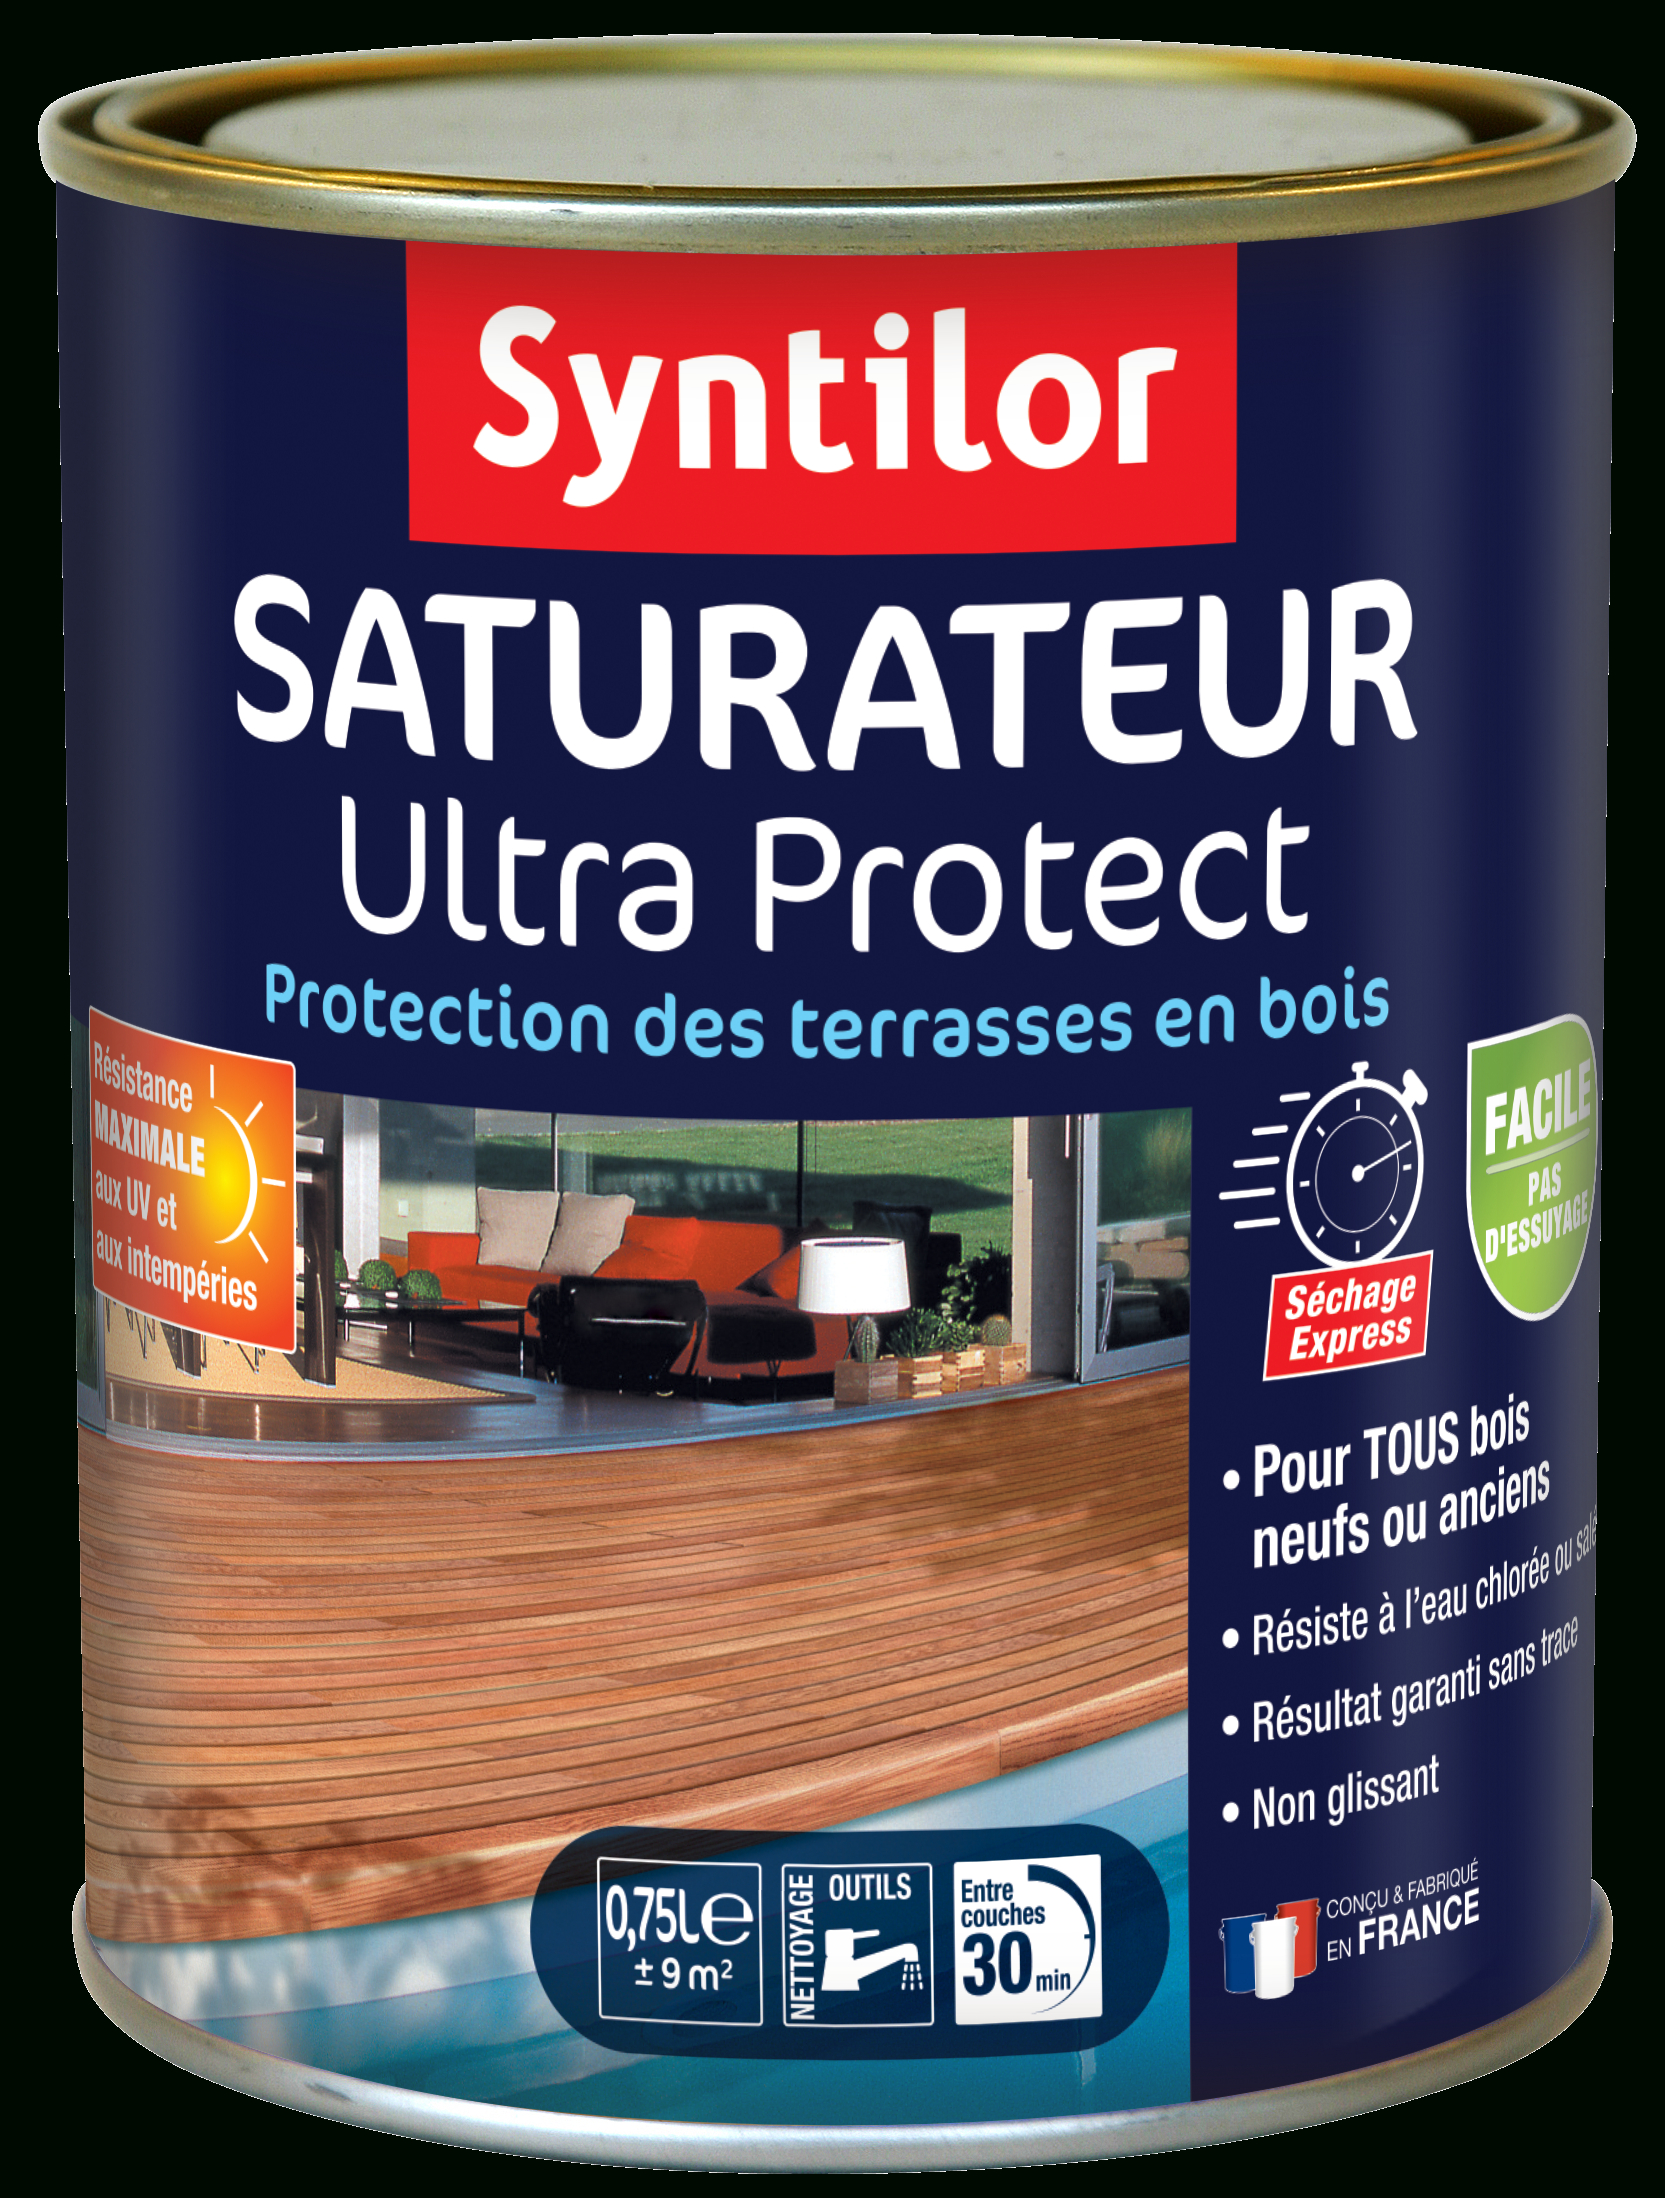 Saturateur Ultra Protect à Saturateur Luxens Protection Terrasse Bois 5L Naturel